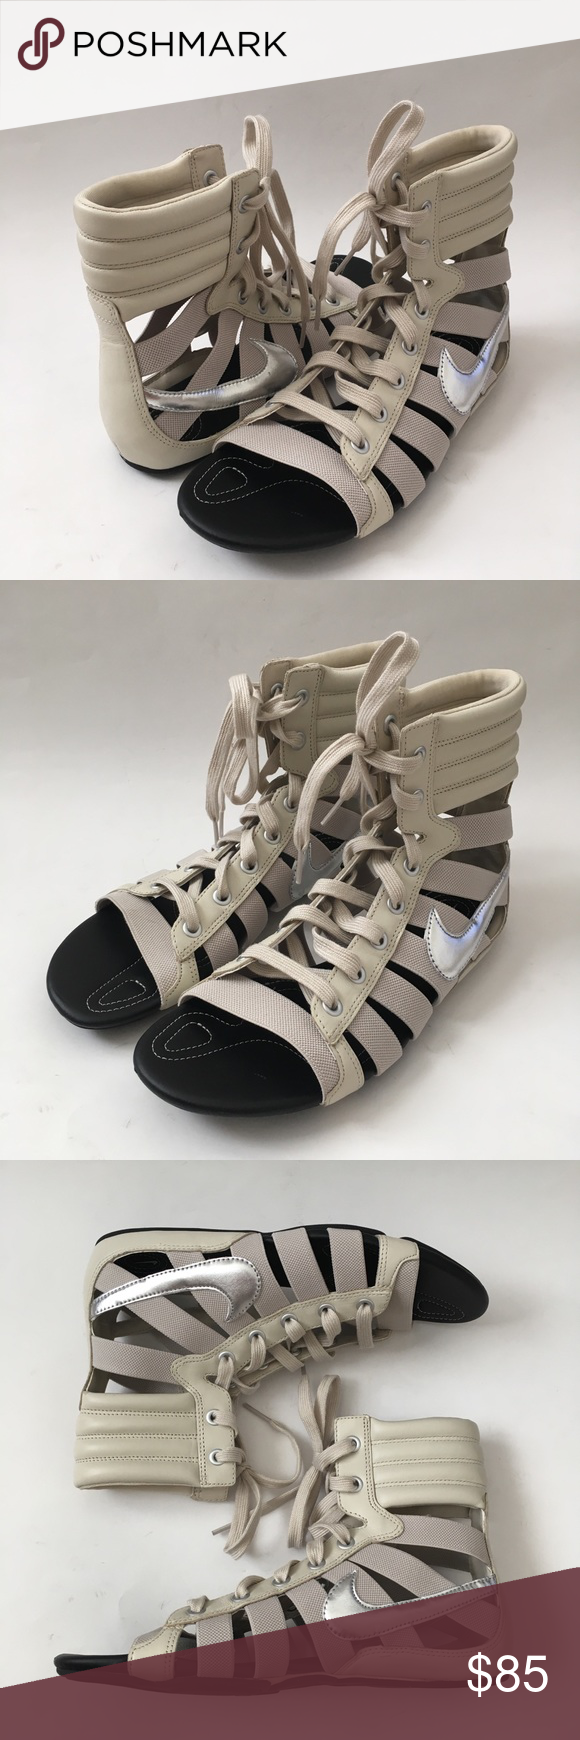 1afb5f10454b NIKE Gladiateur II Gladiator Sandals NIKE Gladiateur II Women s Gladiator  Sandals Style 429881. Size 7.5US 5UK 6AU. Has tiny spot dot on the lace but  barely ...